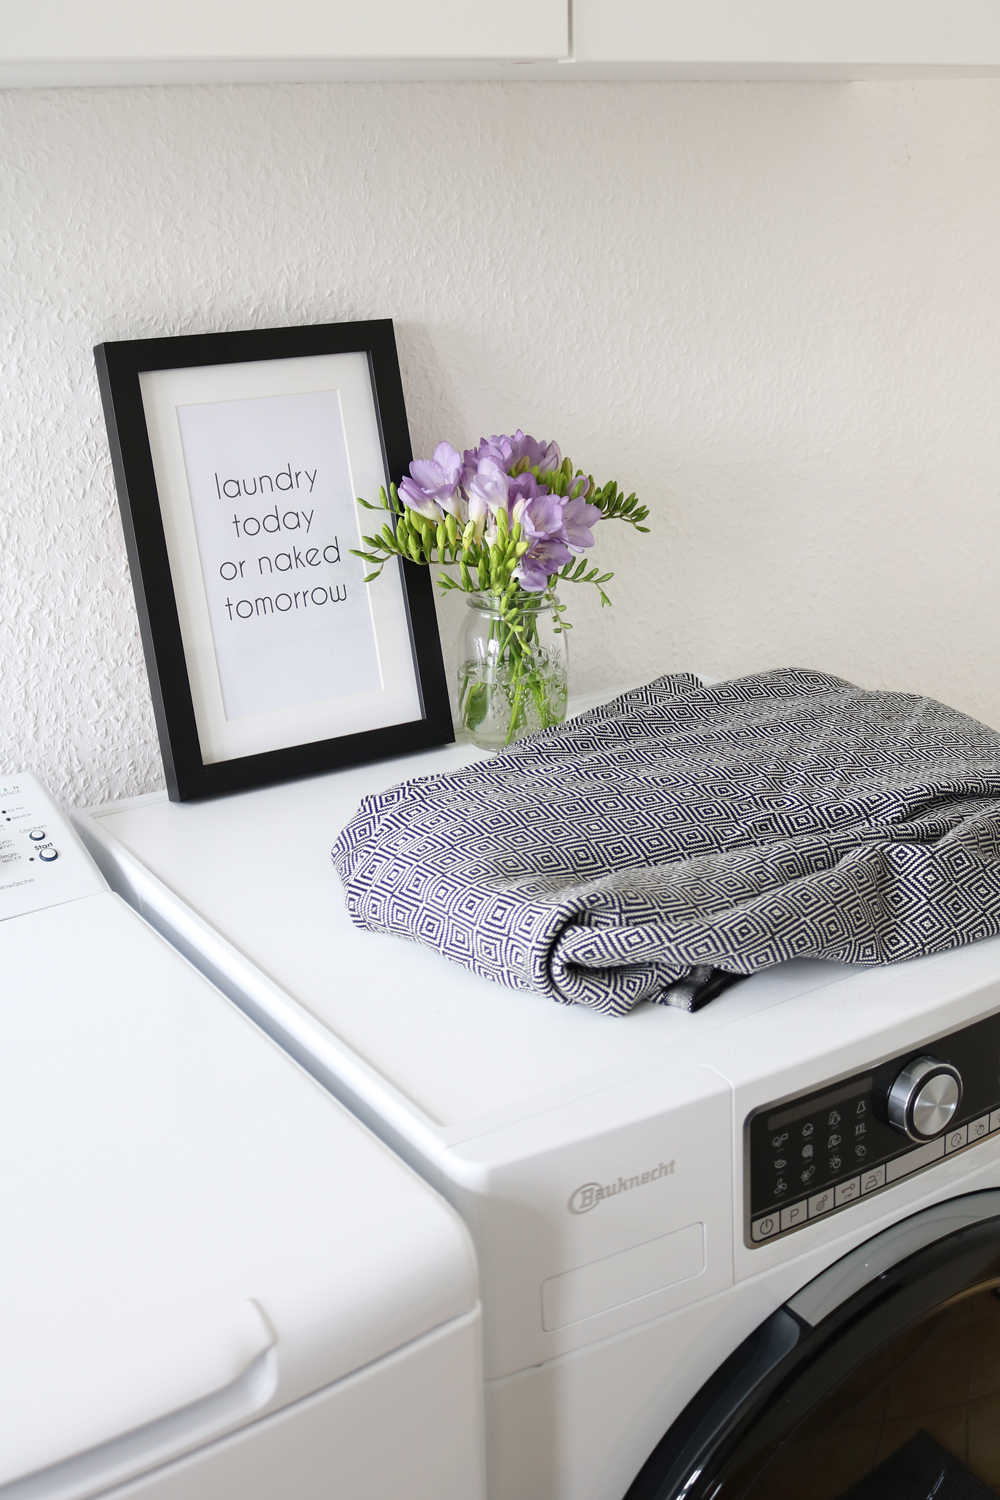 laundry-today-or-naked-tomorrow-printable-3